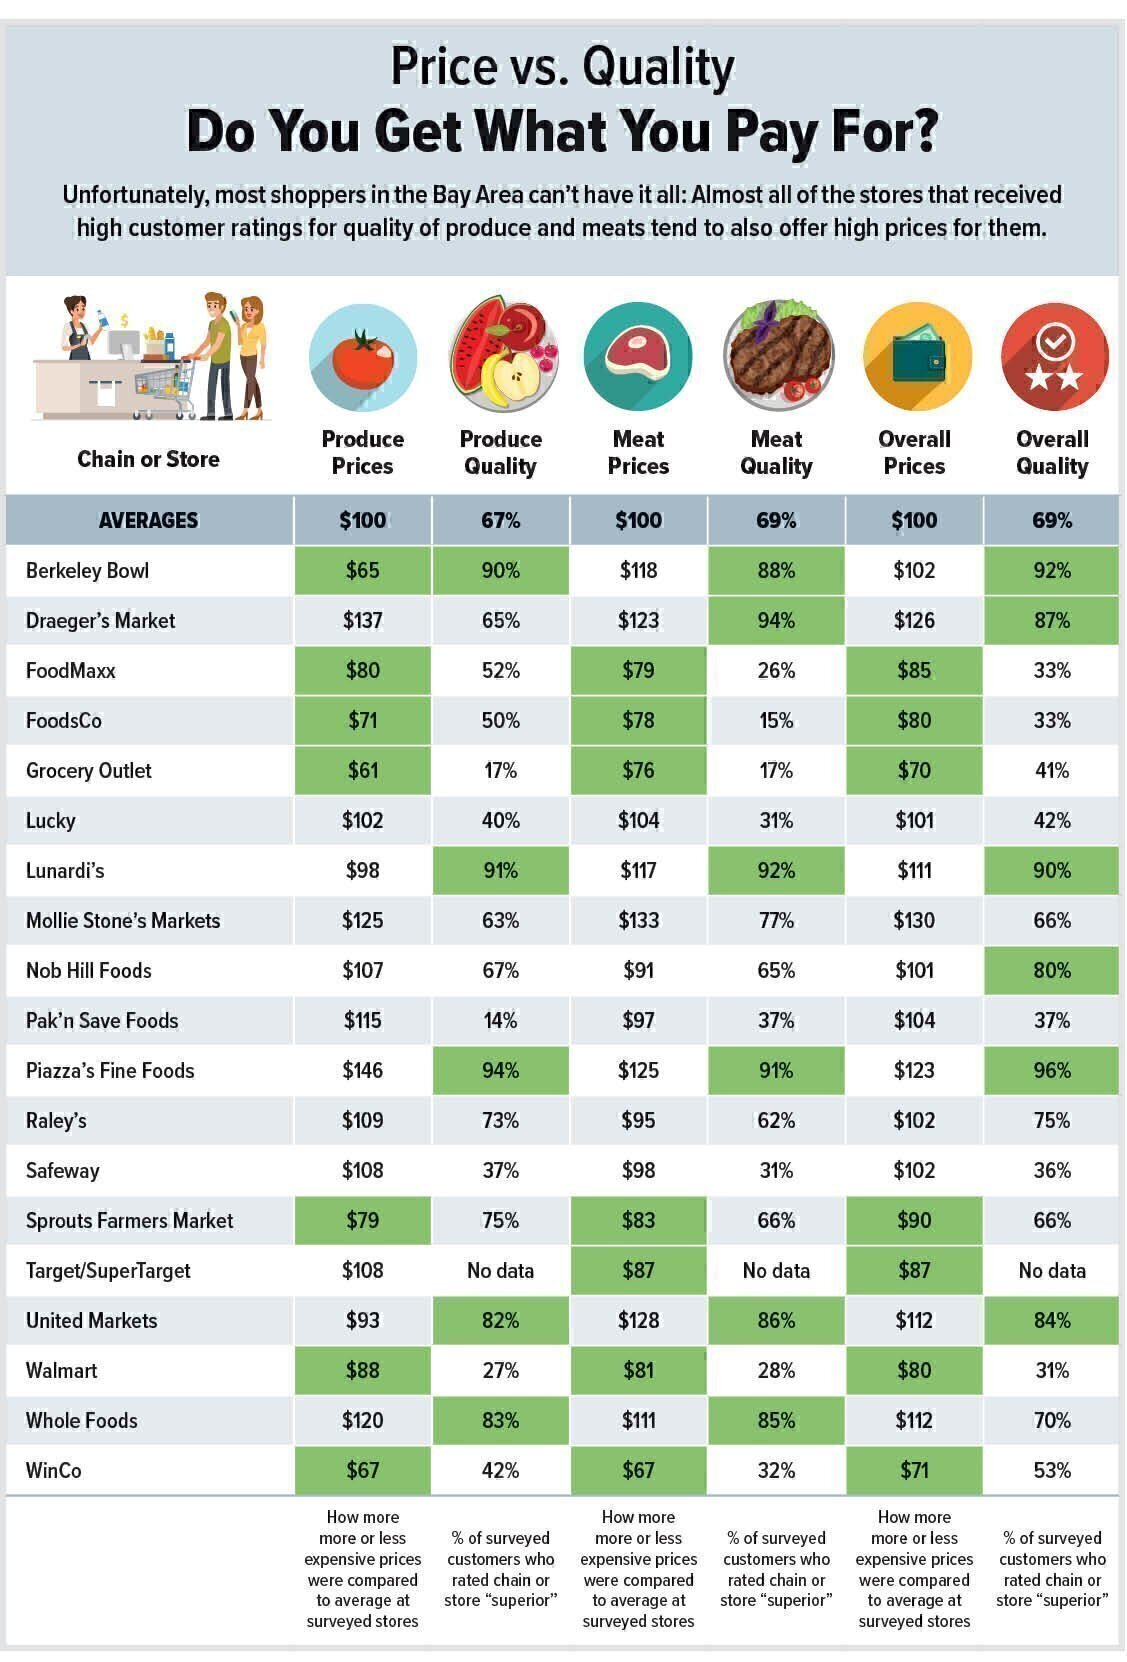 Which Grocery Stores Offer the Best Prices and Quality